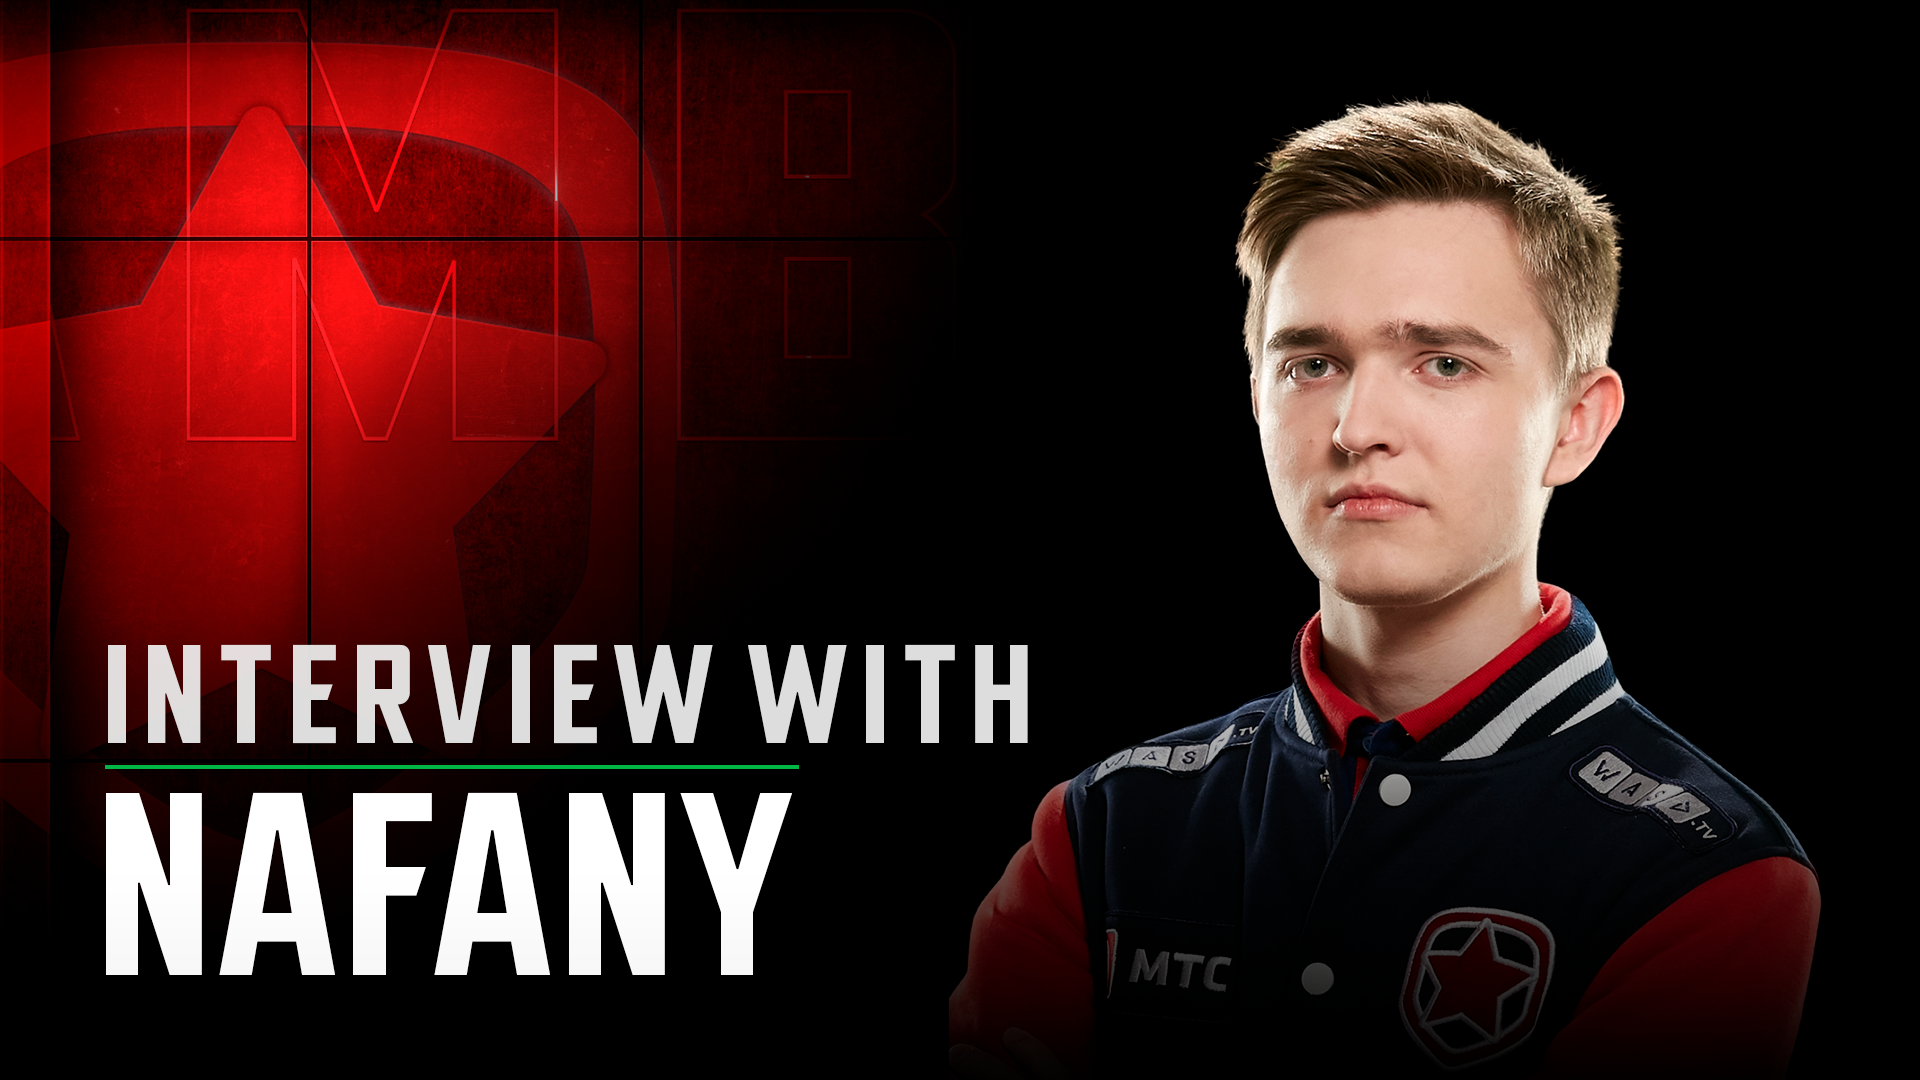 #BerlinMinor2019 | Interview with nafany from Gambit Esports Youngsters